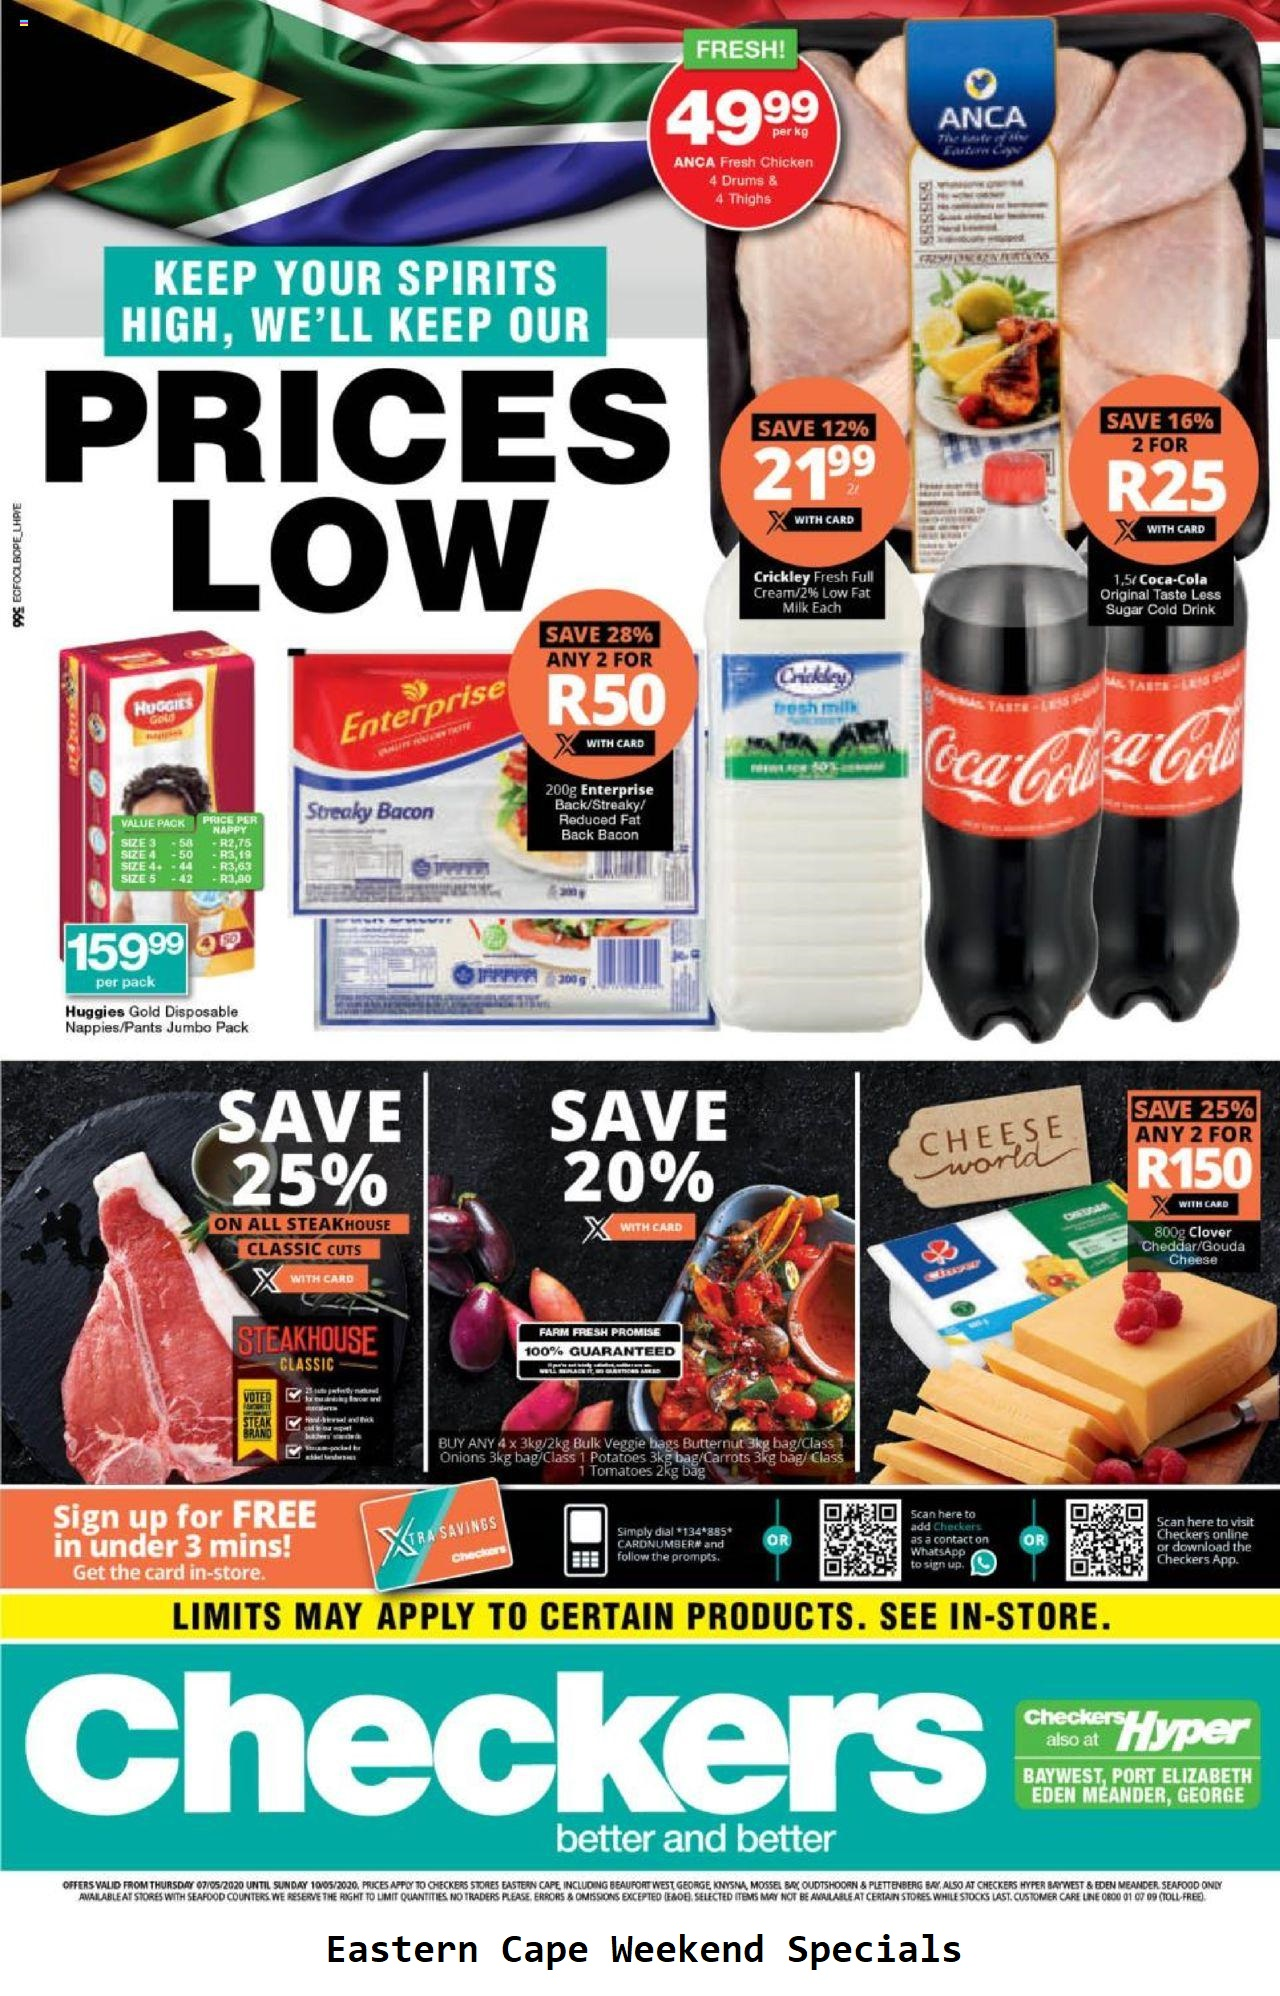 checkers specials weekend specials 7 may 2020